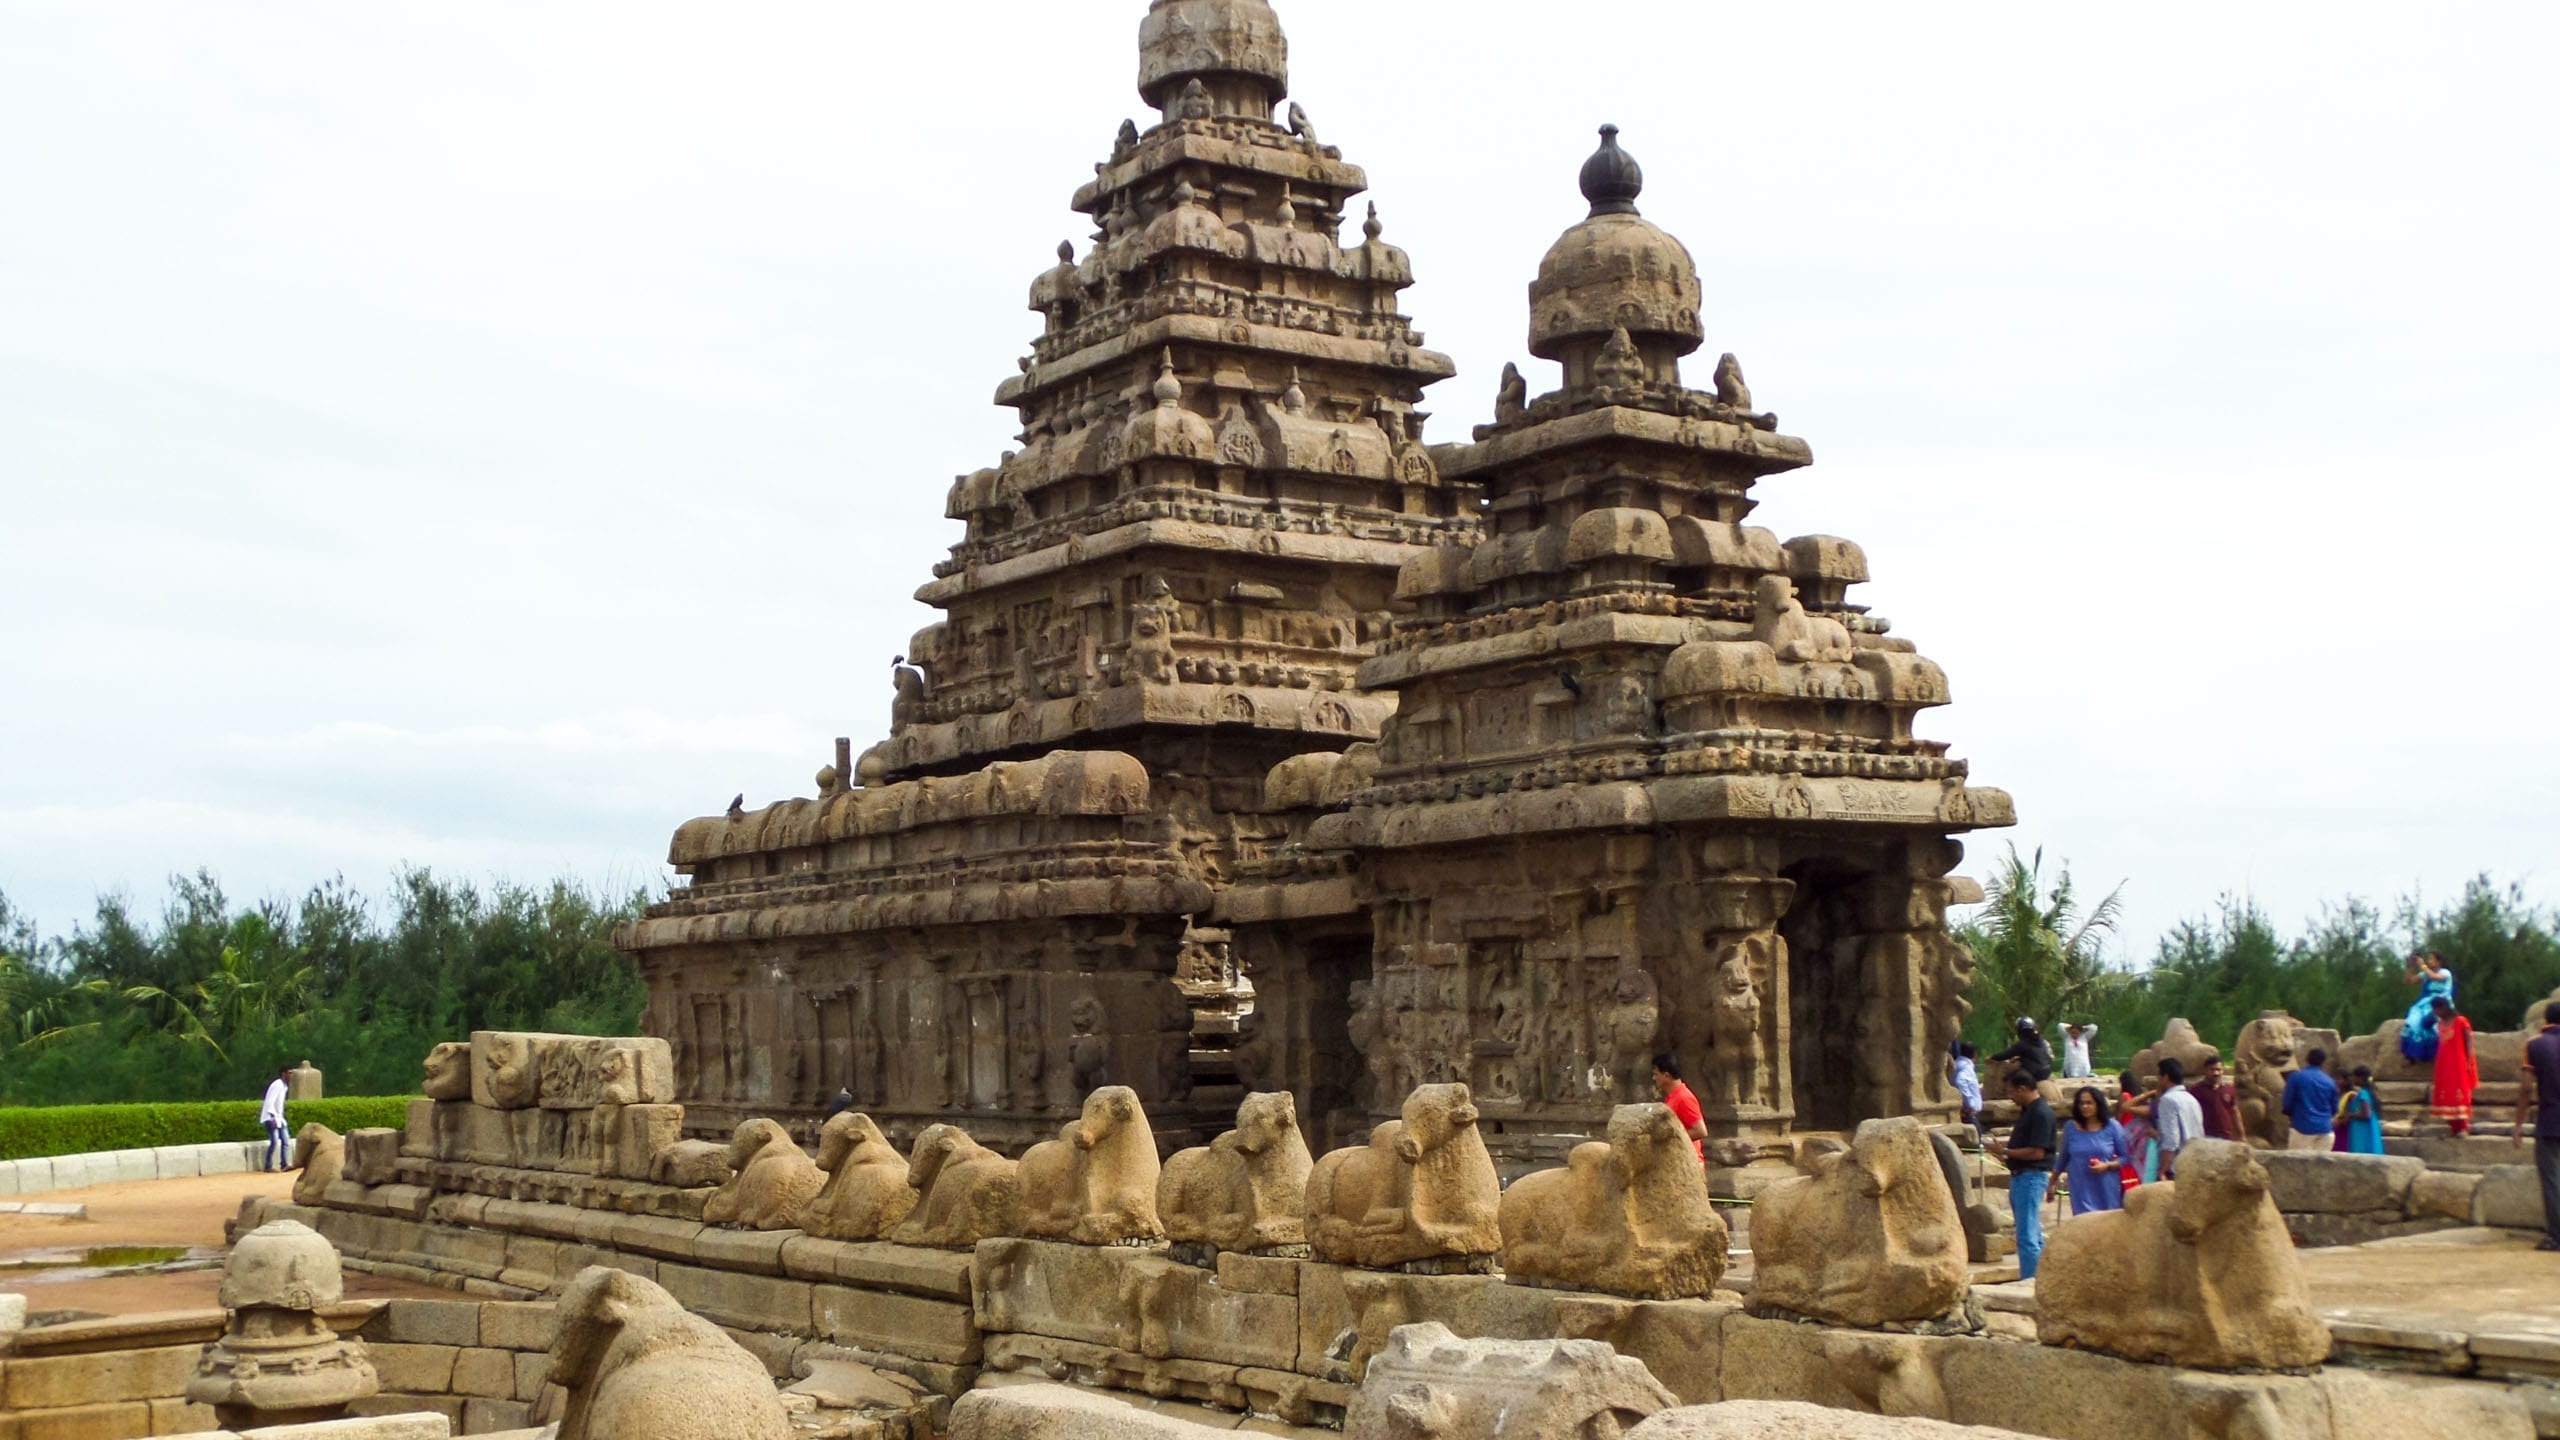 Ancient temple ruins in India